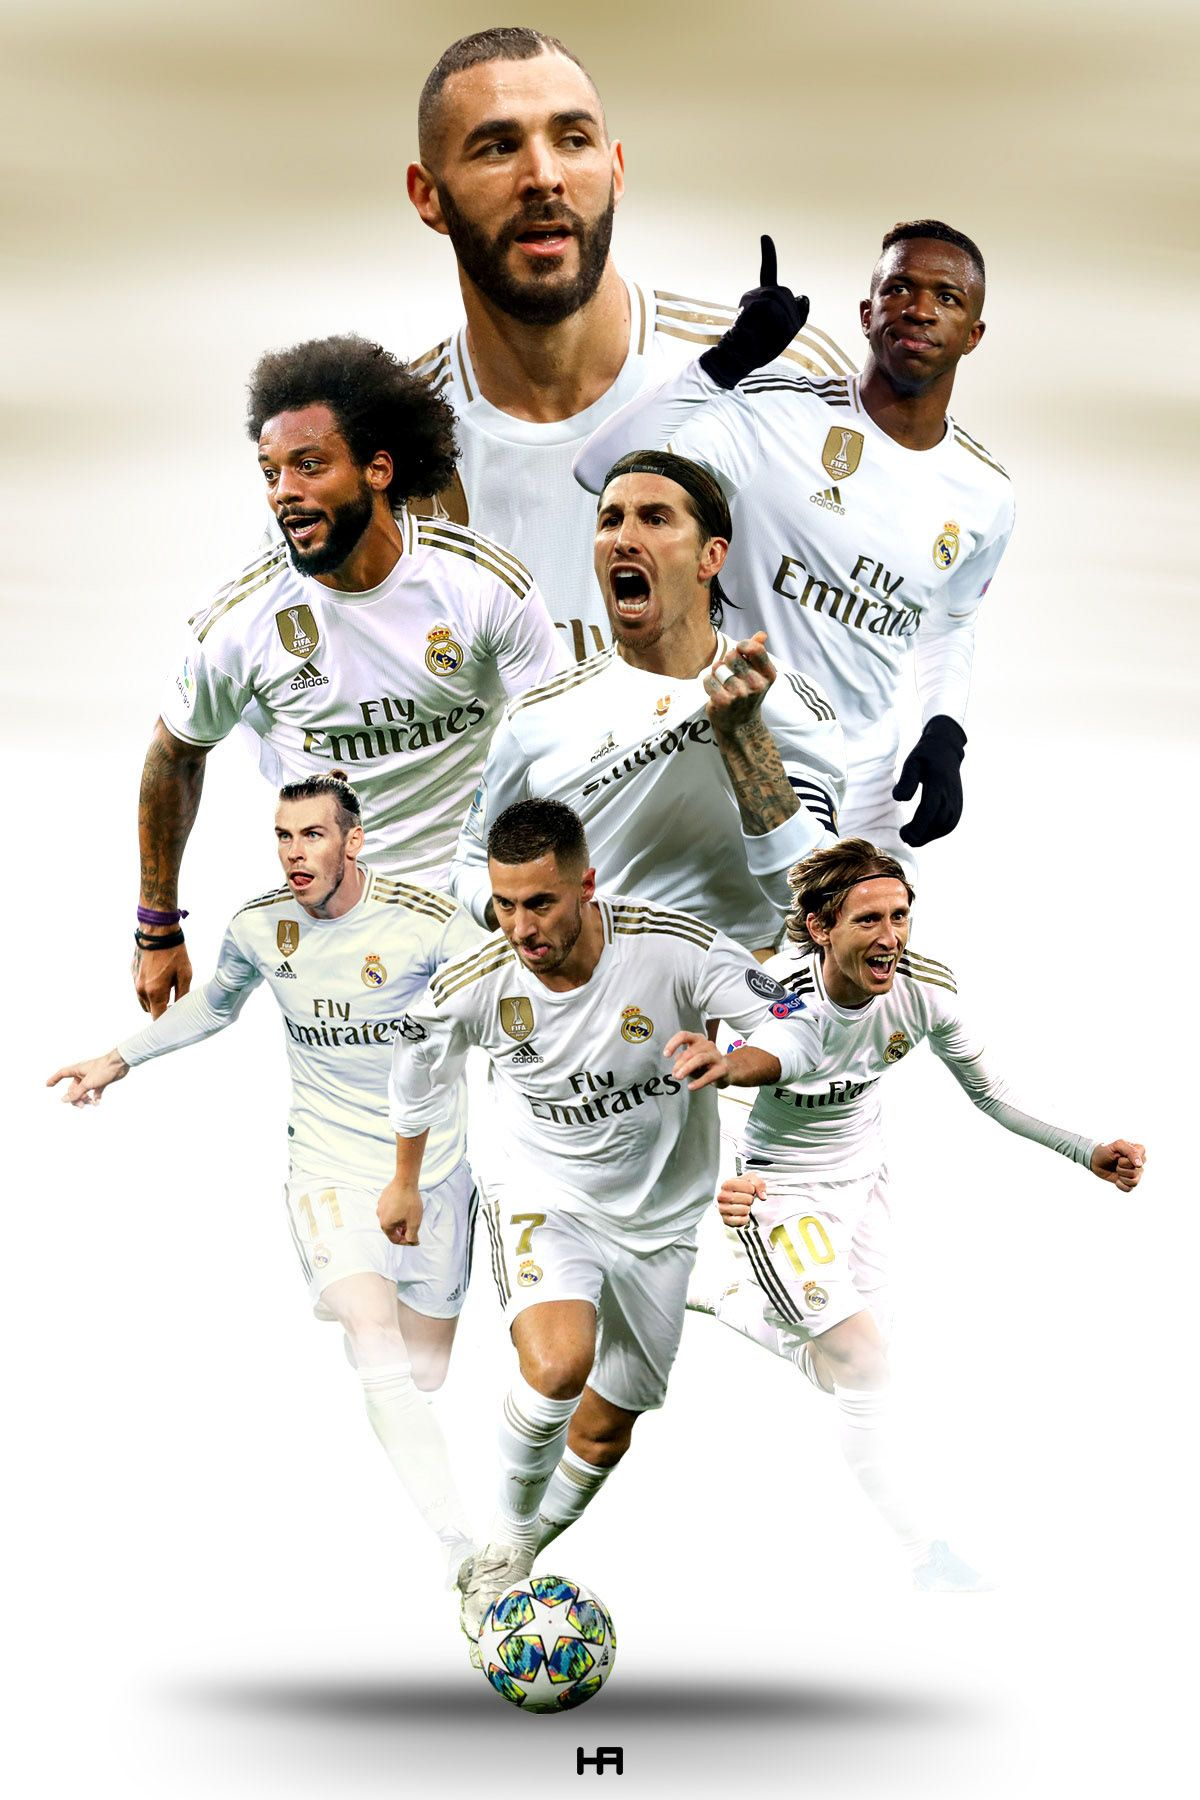 FOOTBALL EDITS 2020 on Behance in 2020 Real madrid